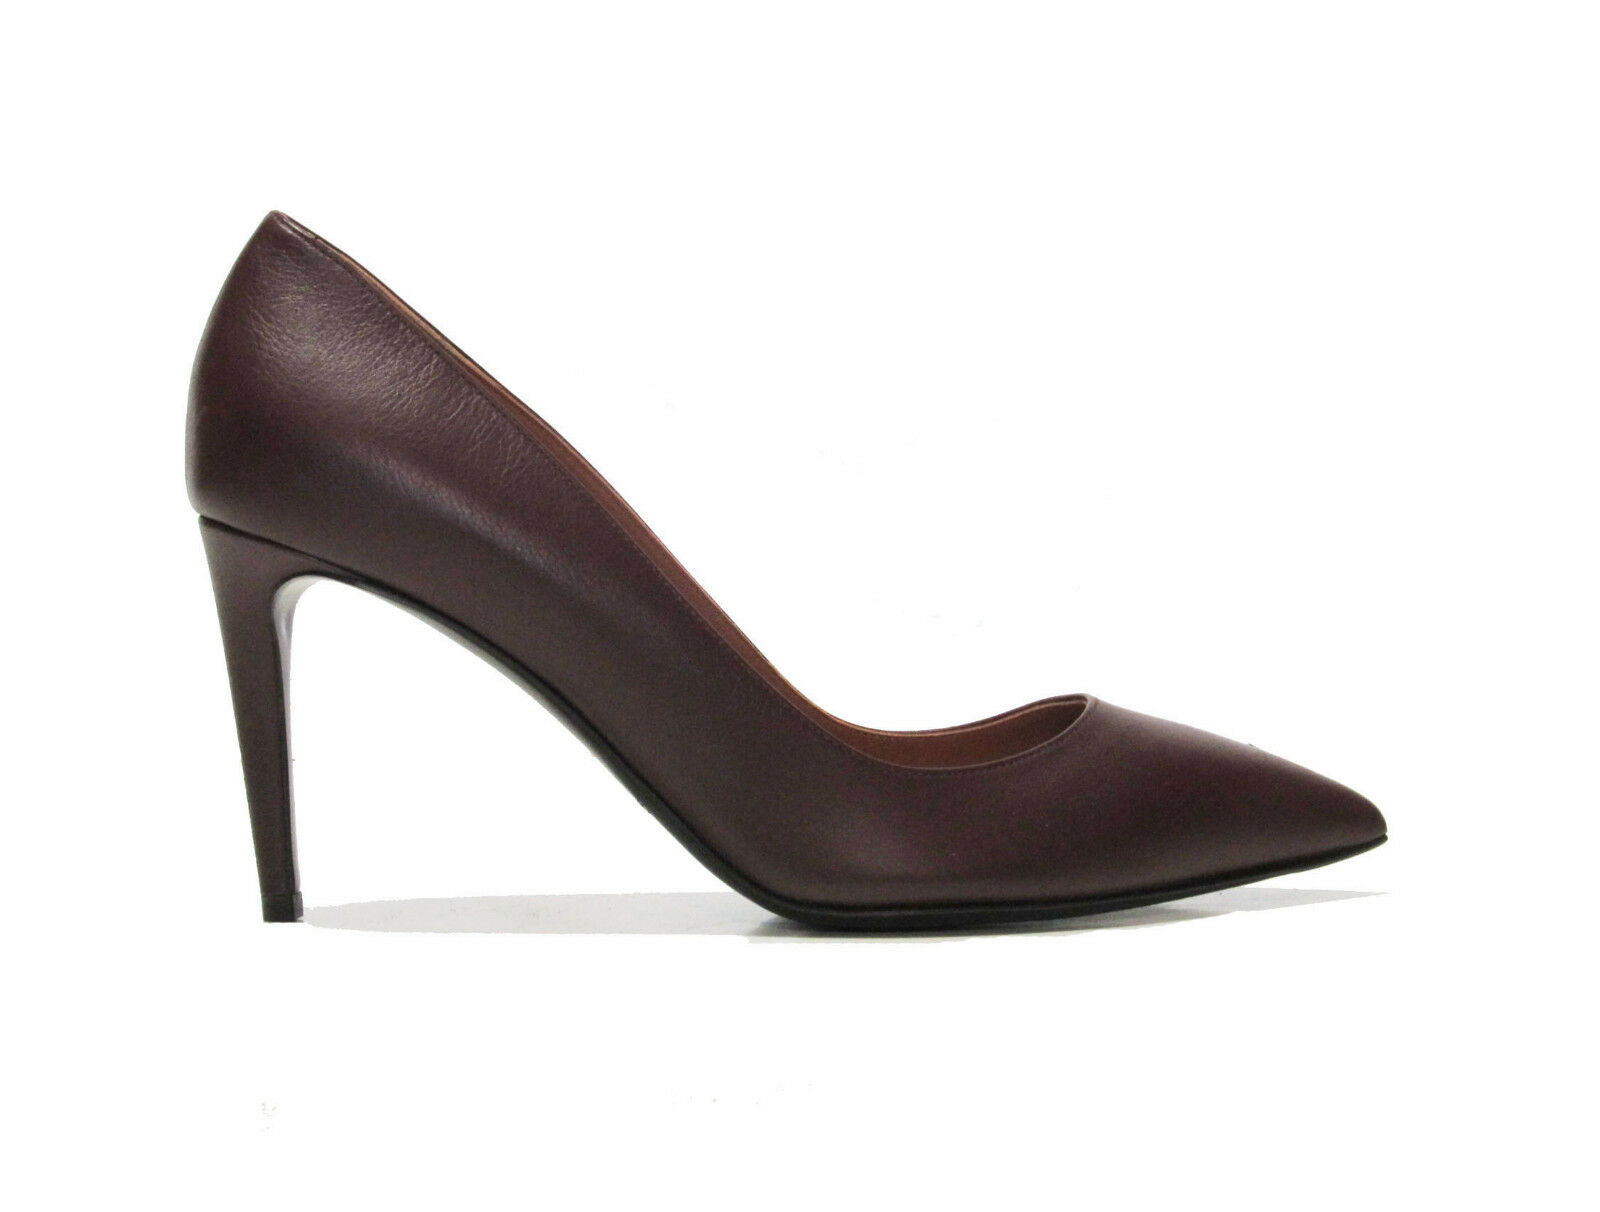 550 Ralph Lauren violet Label Collection femmes  Armissa Nappa Calf Pumps